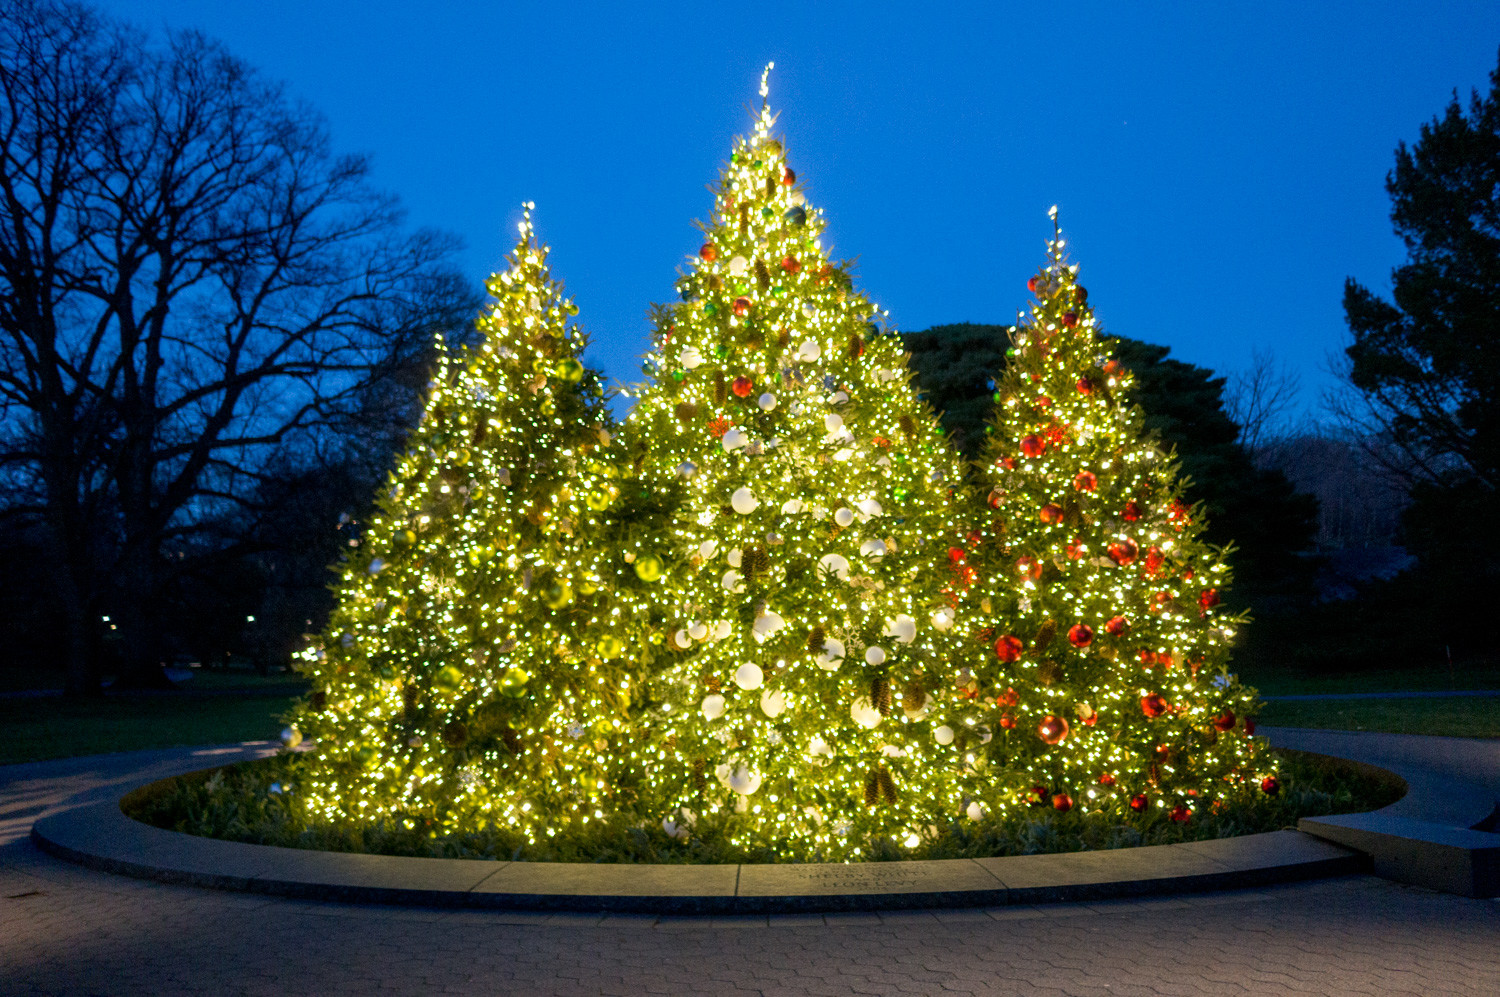 The New York Botanical Garden is decked out in Christmas lights and trees in the spirit of the season. The biggest expression of the Botanical Garden's holiday cheer is the holiday train show, which takes up most of the conservatory.